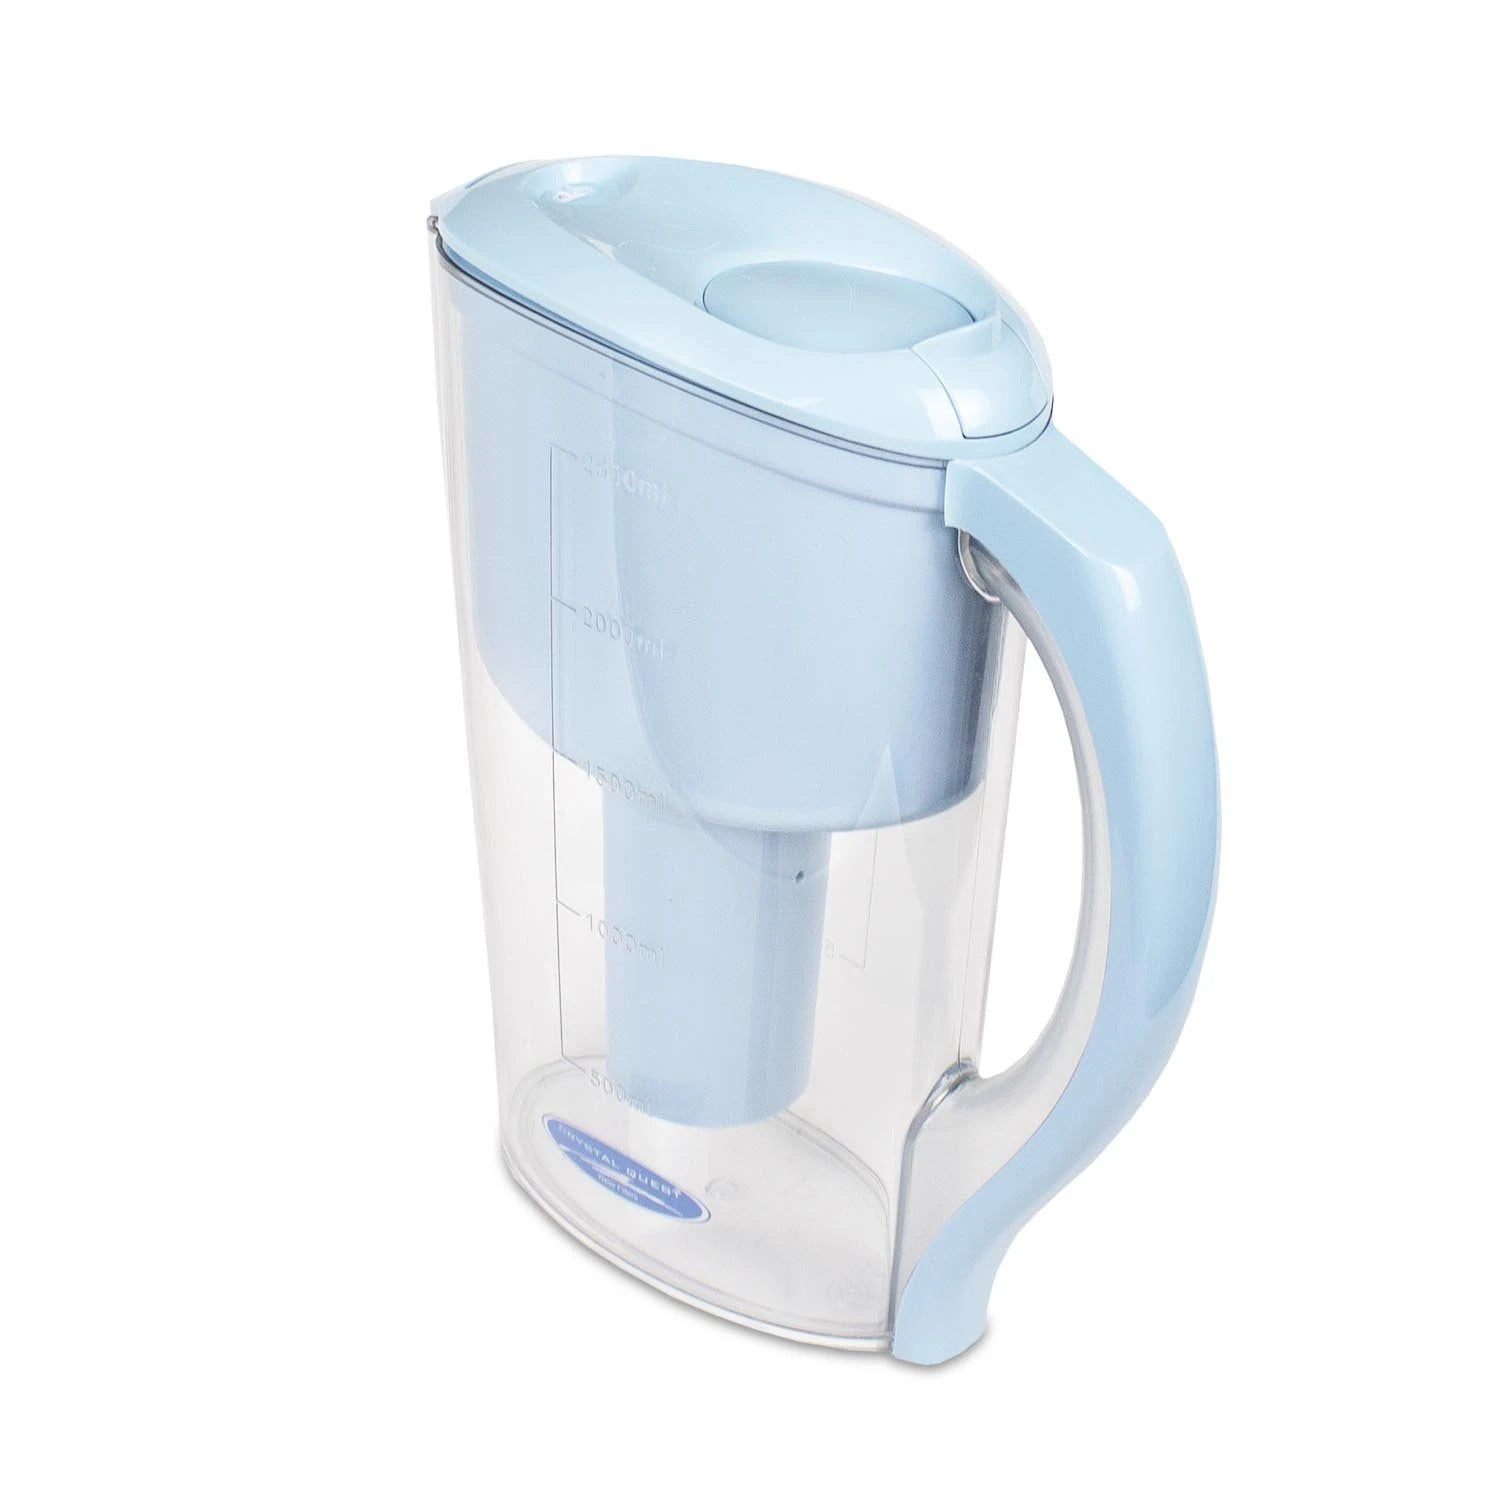 Crystal Quest® Water Pitcher Filter System